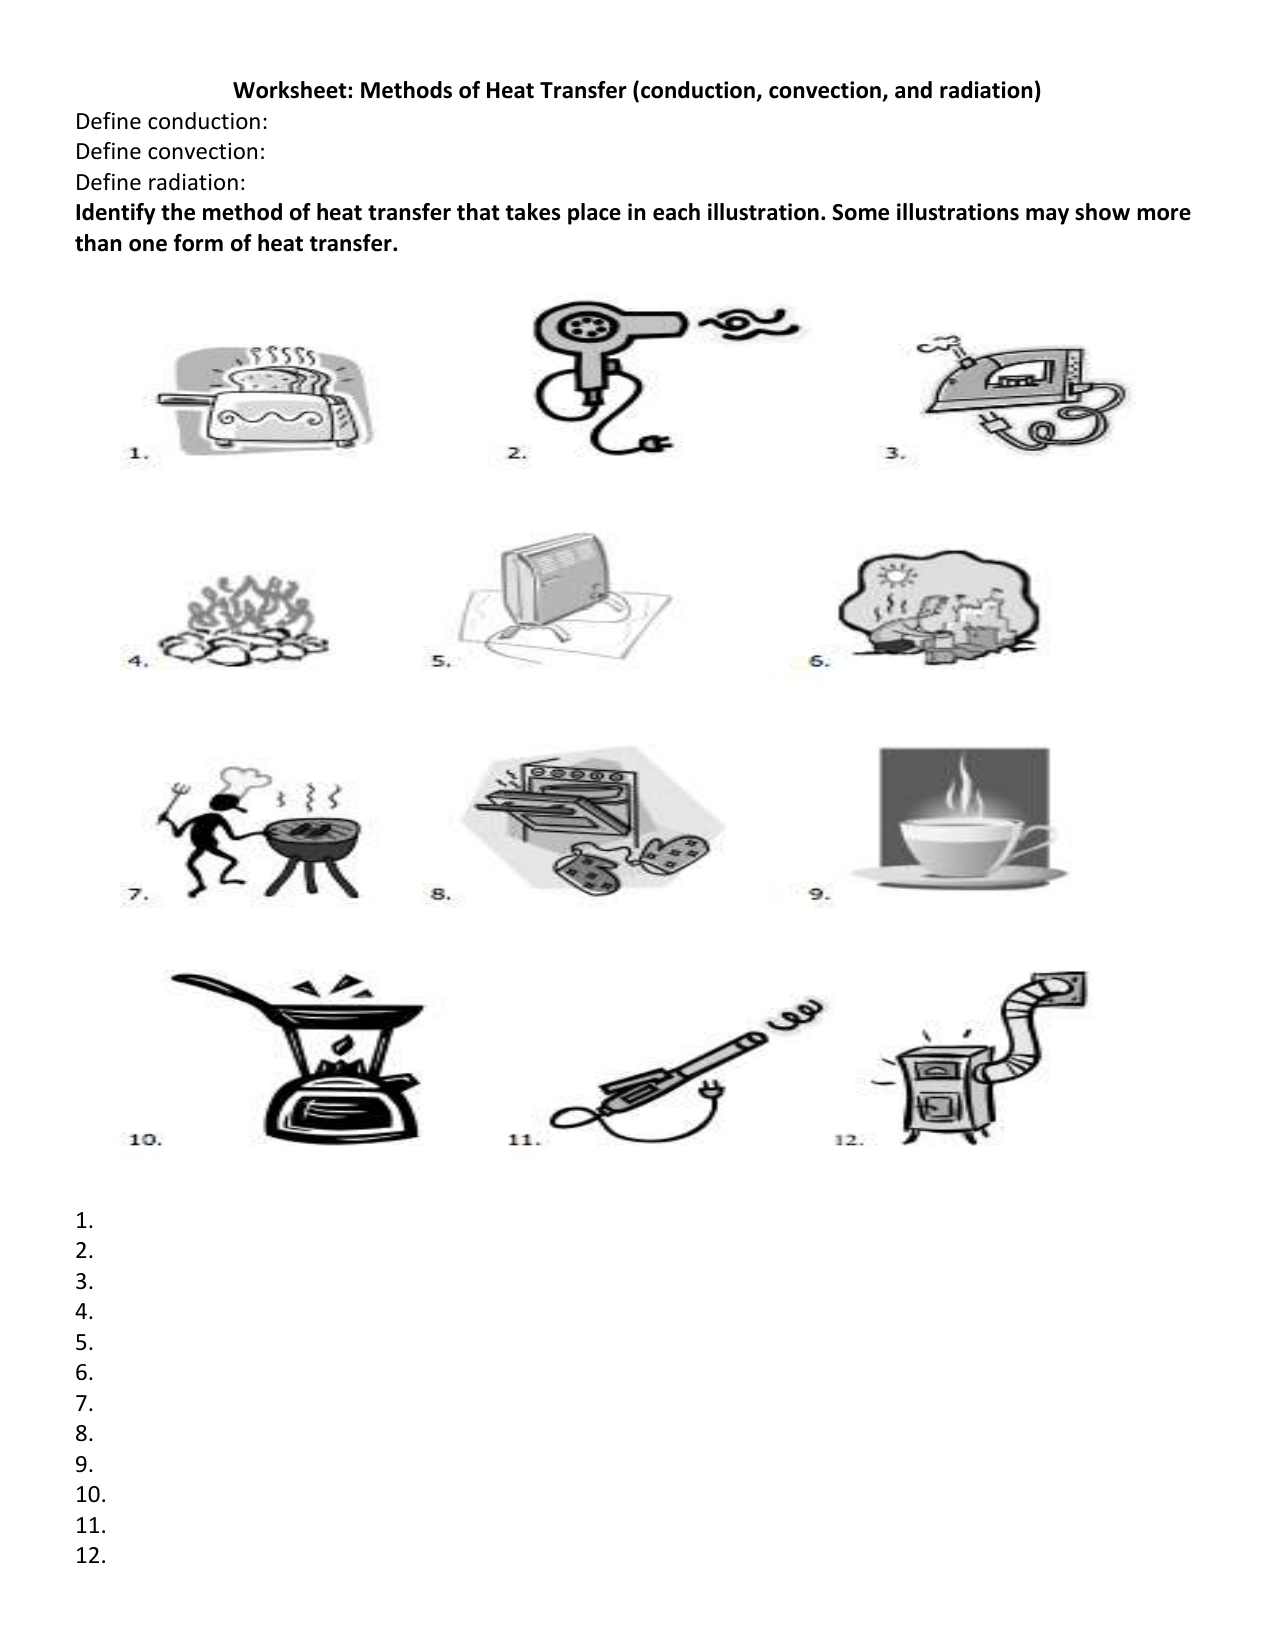 Worksheets Worksheet Methods Of Heat Transfer methods of heat transfer worksheet